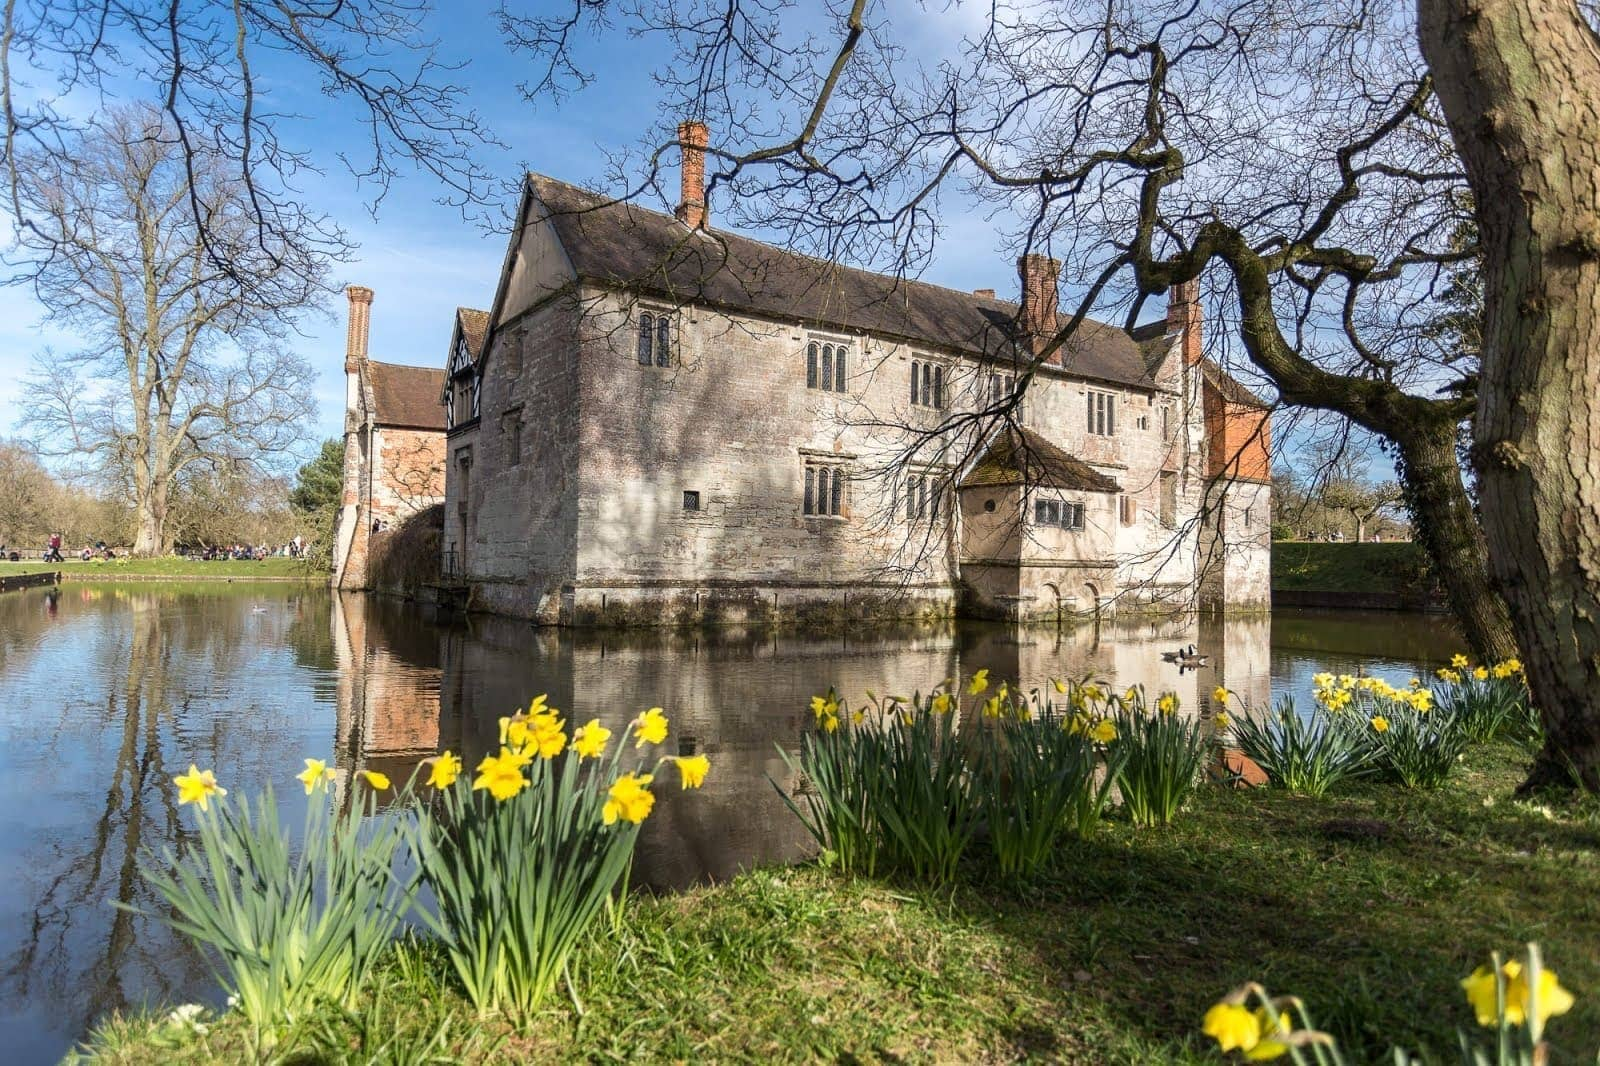 Baddesley Clinton Moated Manor House Daffodils UK by Laurence Norah